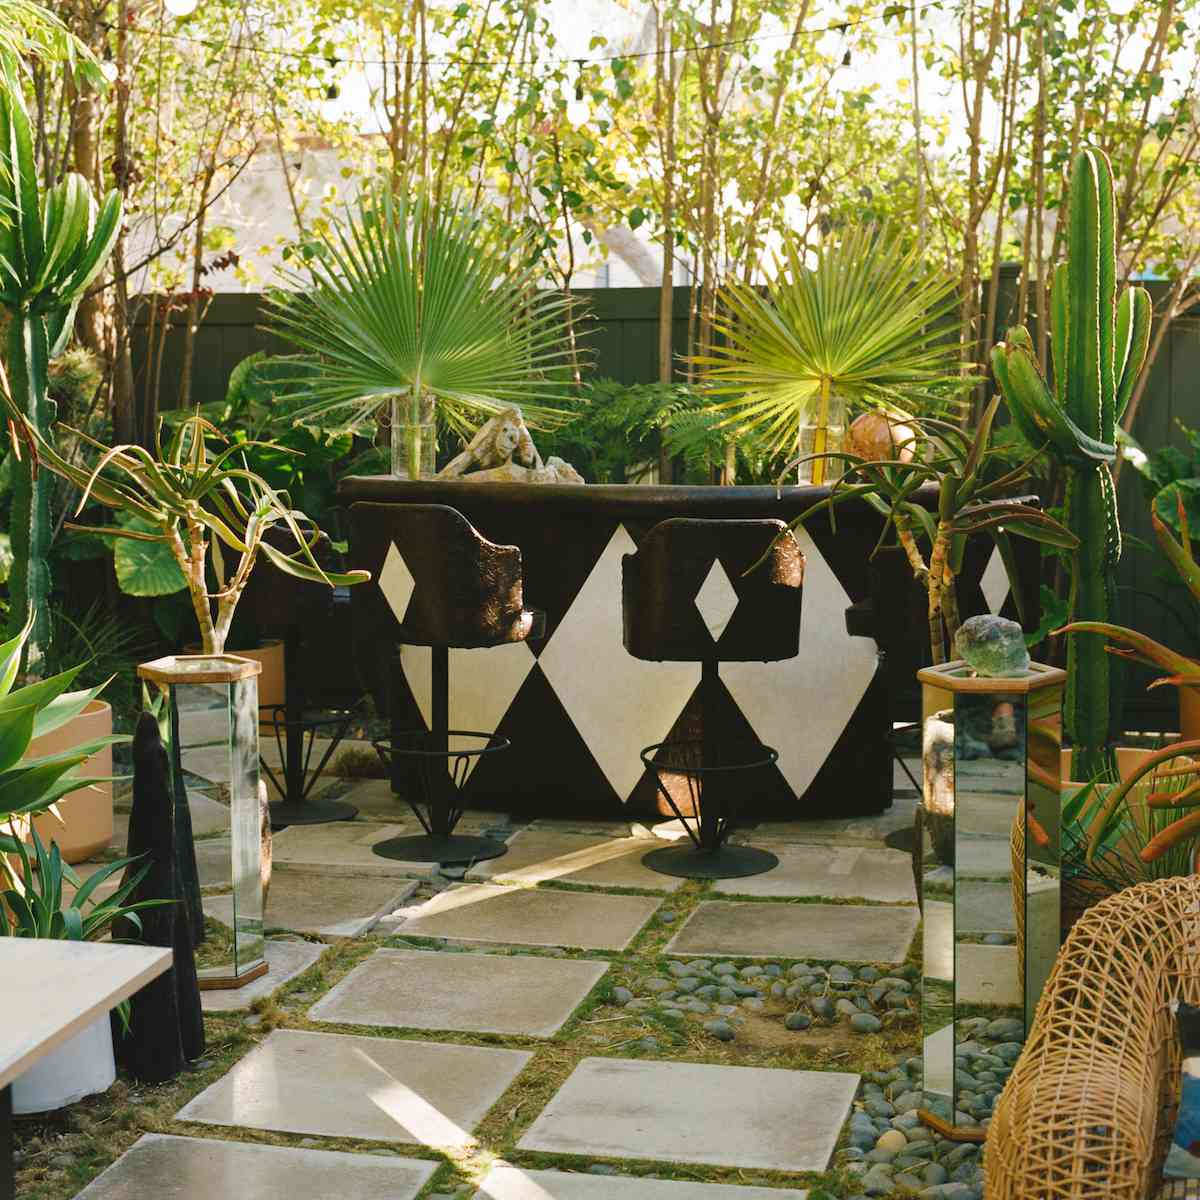 Outdoor bar with black and white color scheme